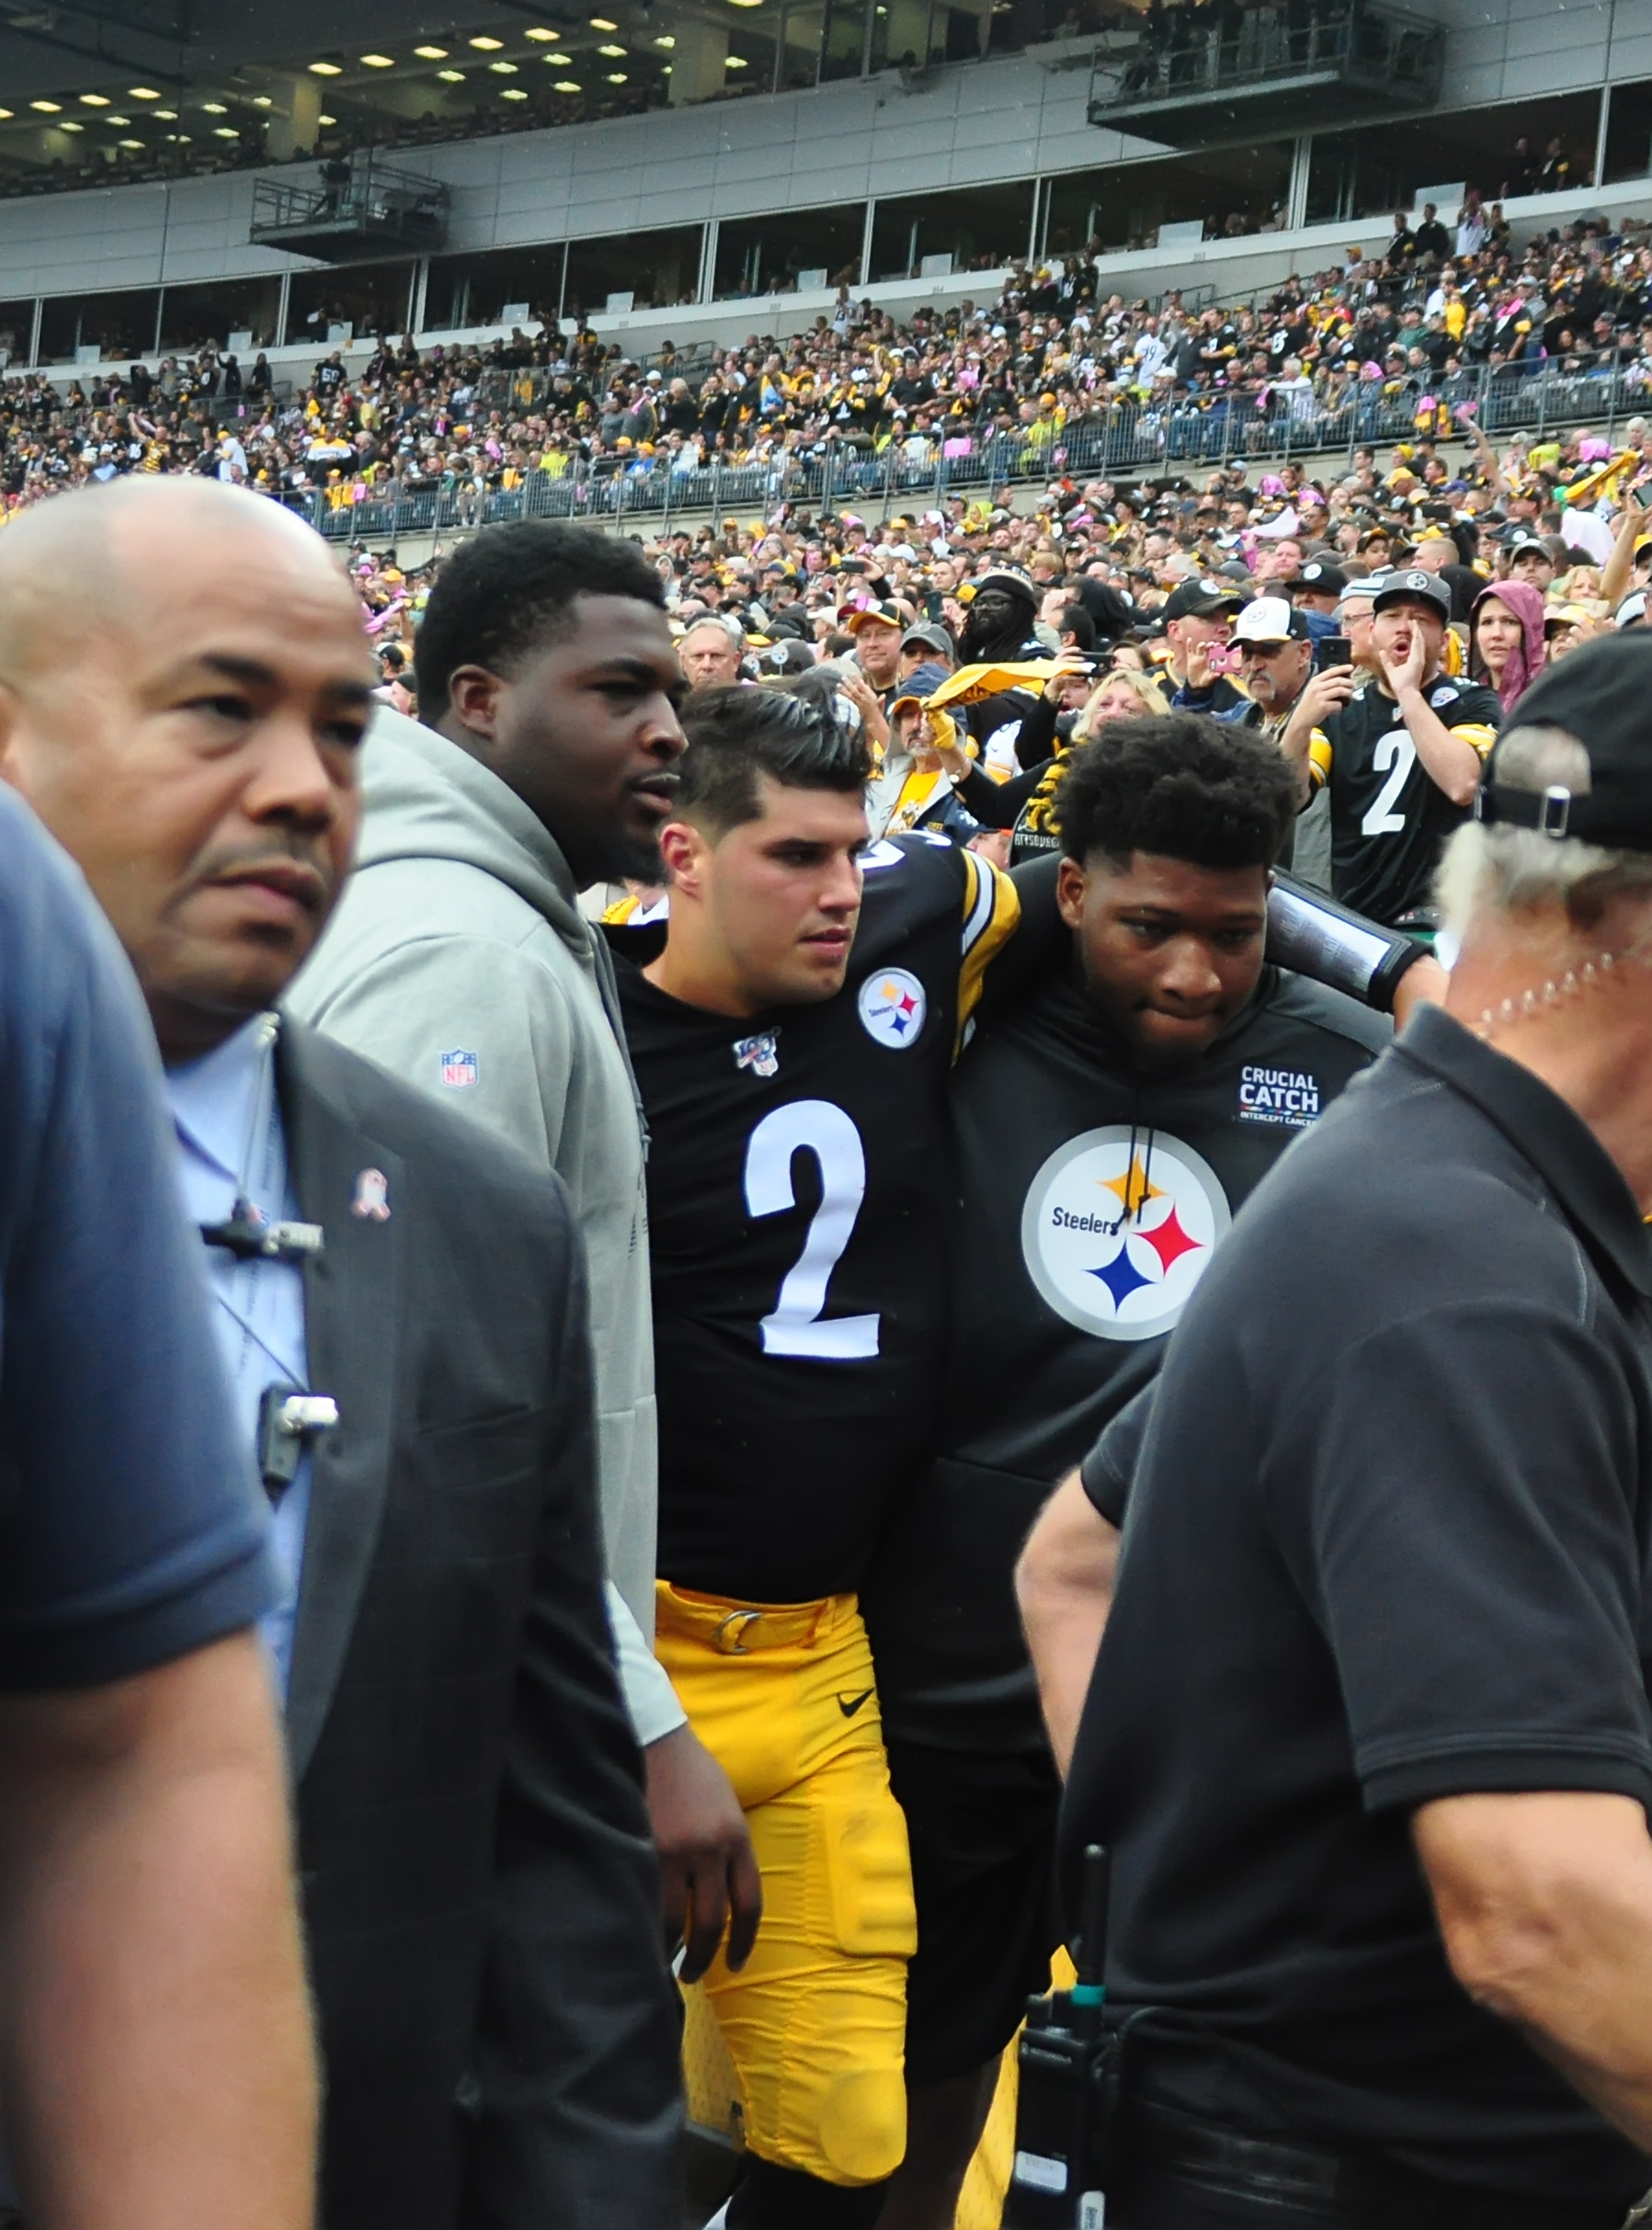 Team members helping him to the tunnel